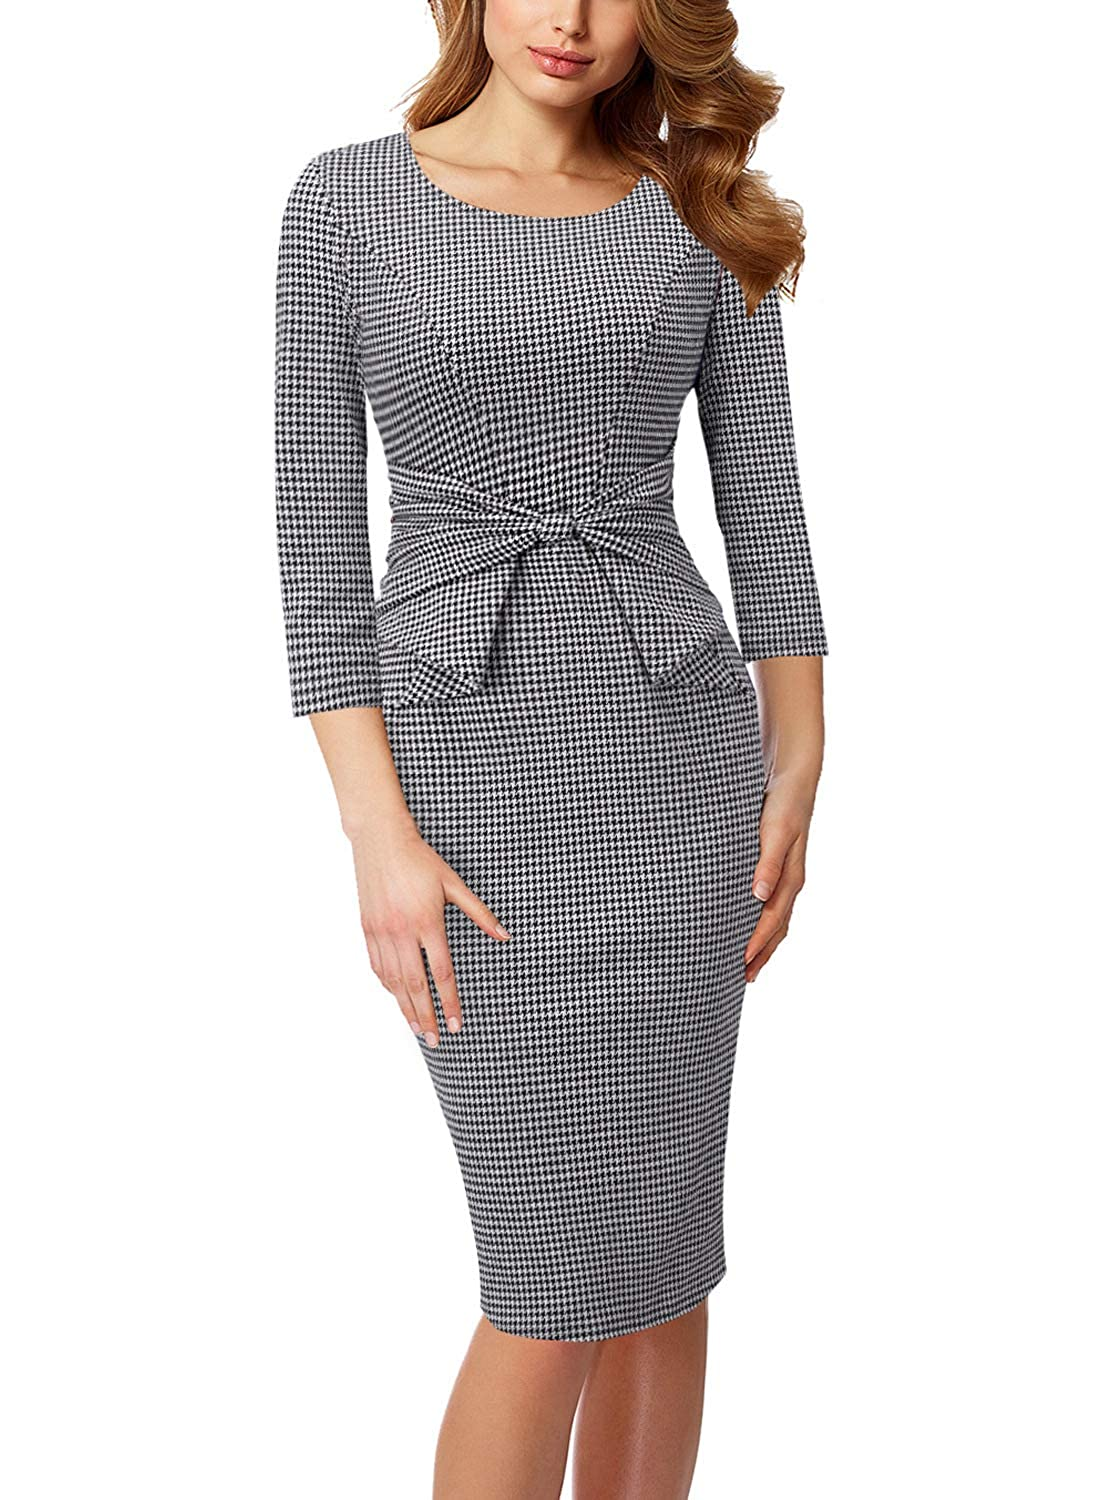 Black White Houndstooth 3 4 Sleeve VFSHOW Womens Pleated Bow Wear to Work Business Office Church Sheath Dress